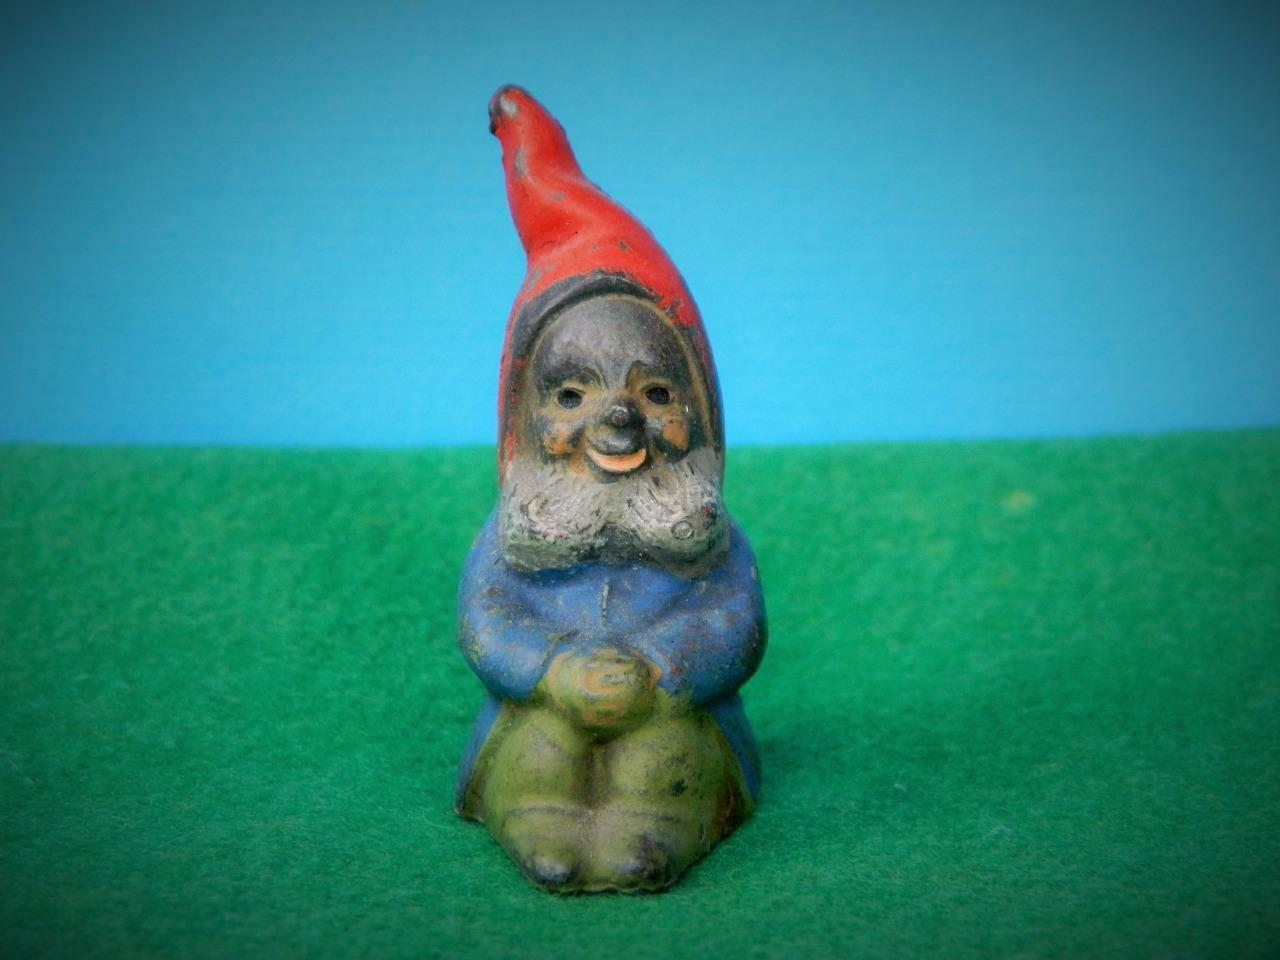 VINTAGE 1930s BRITAINS MINIATURE LEAD GARDEN GNOME SITTING HANDS ON KNEES B